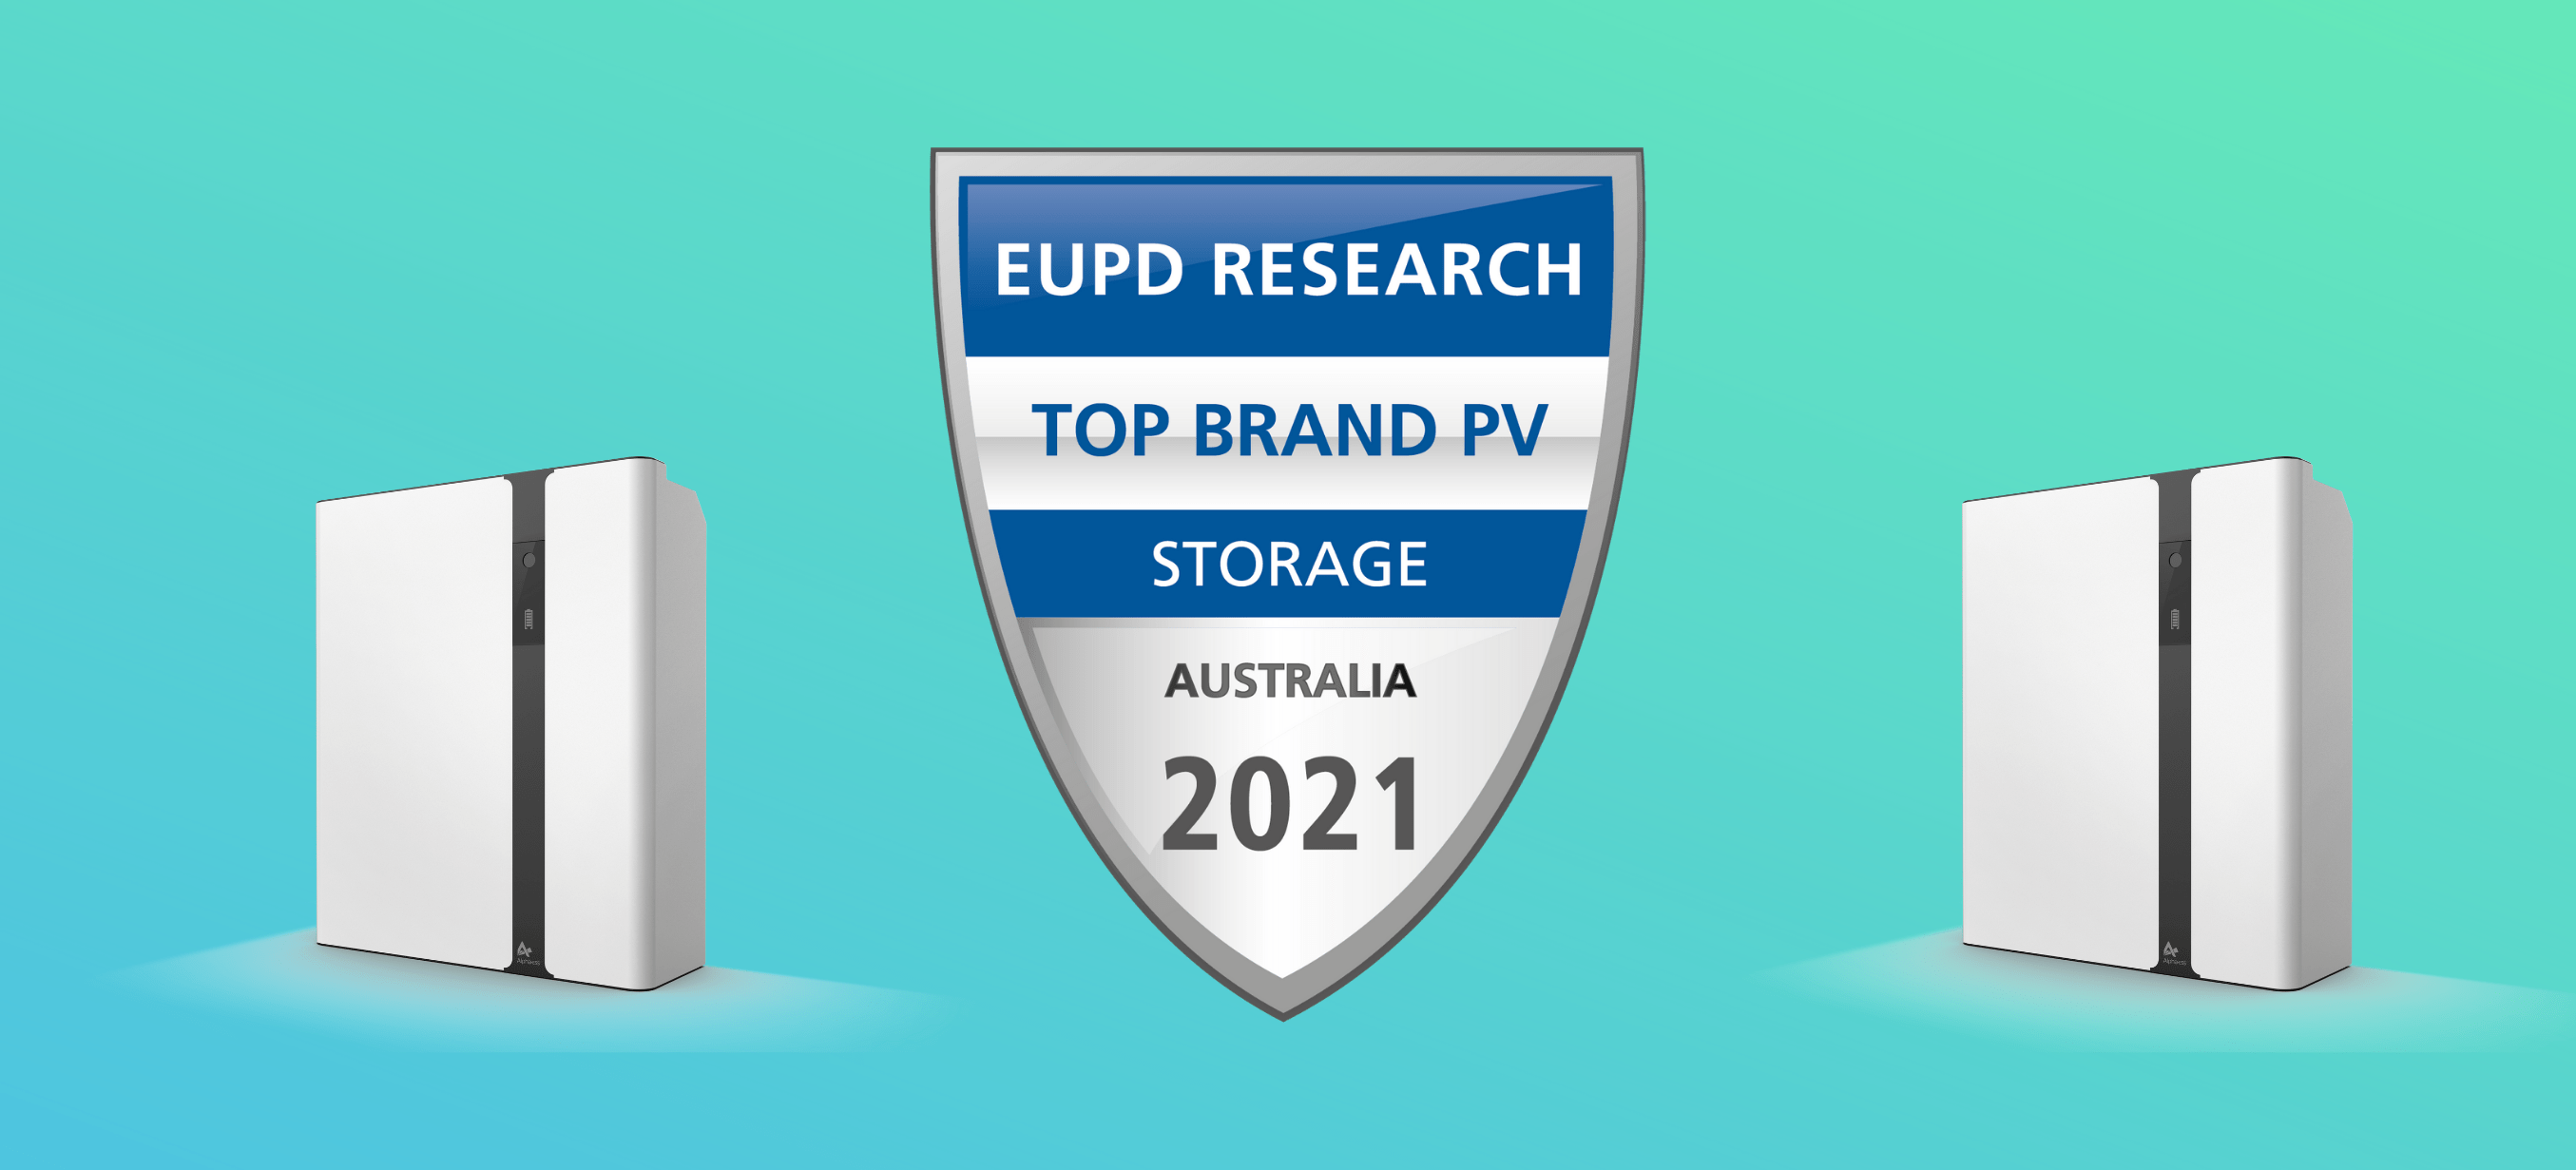 EUPD Research Top Brand